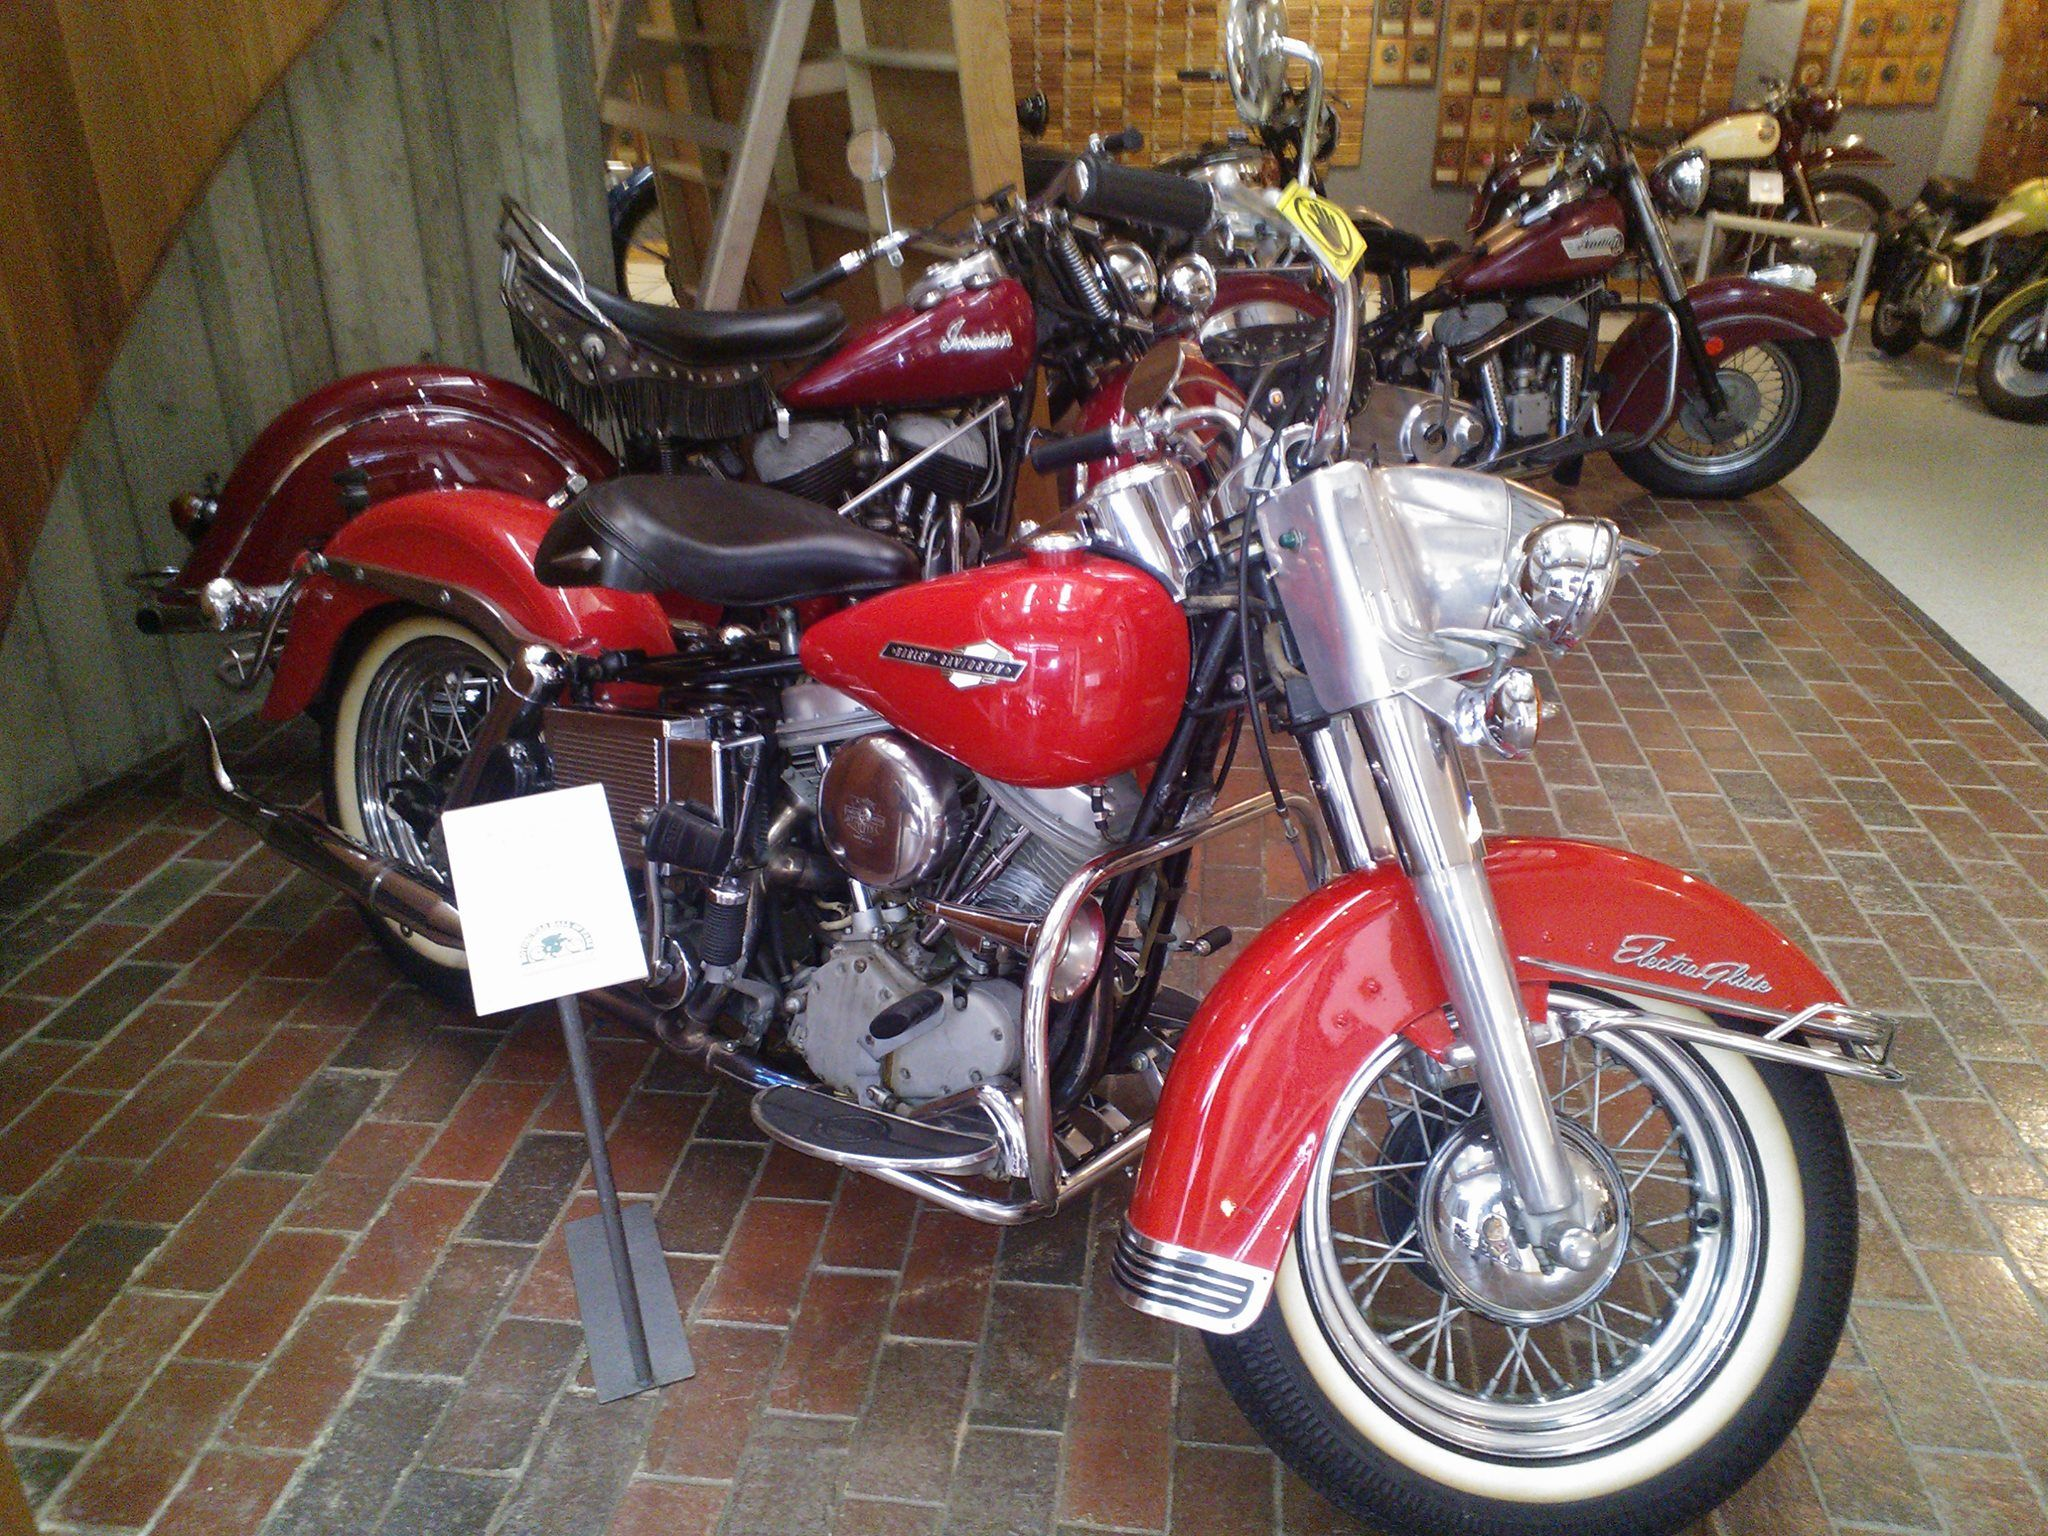 Pics from my visit at the AMA Motorcycle Hall of Fame Museum in Pickerington, OH.